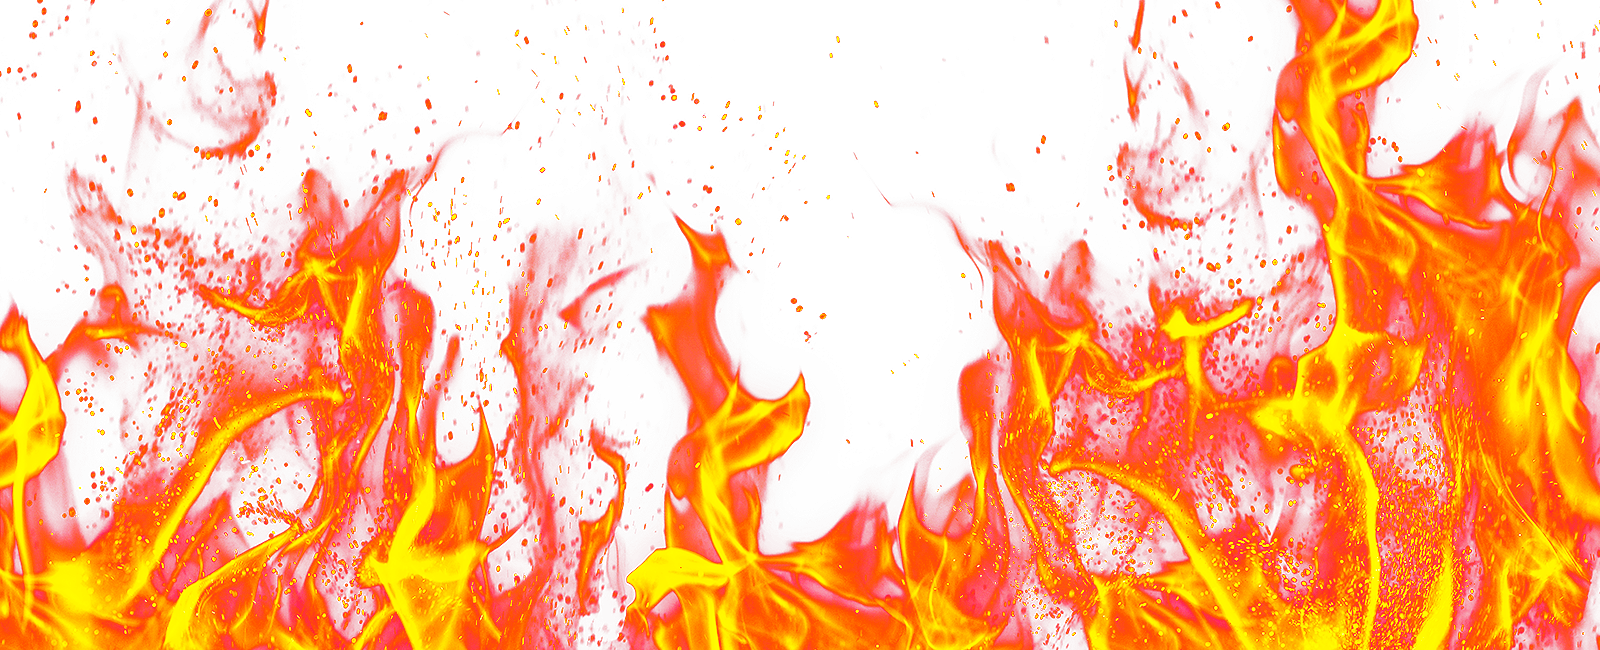 Flames clipart transparent tumblr. Fire png images free